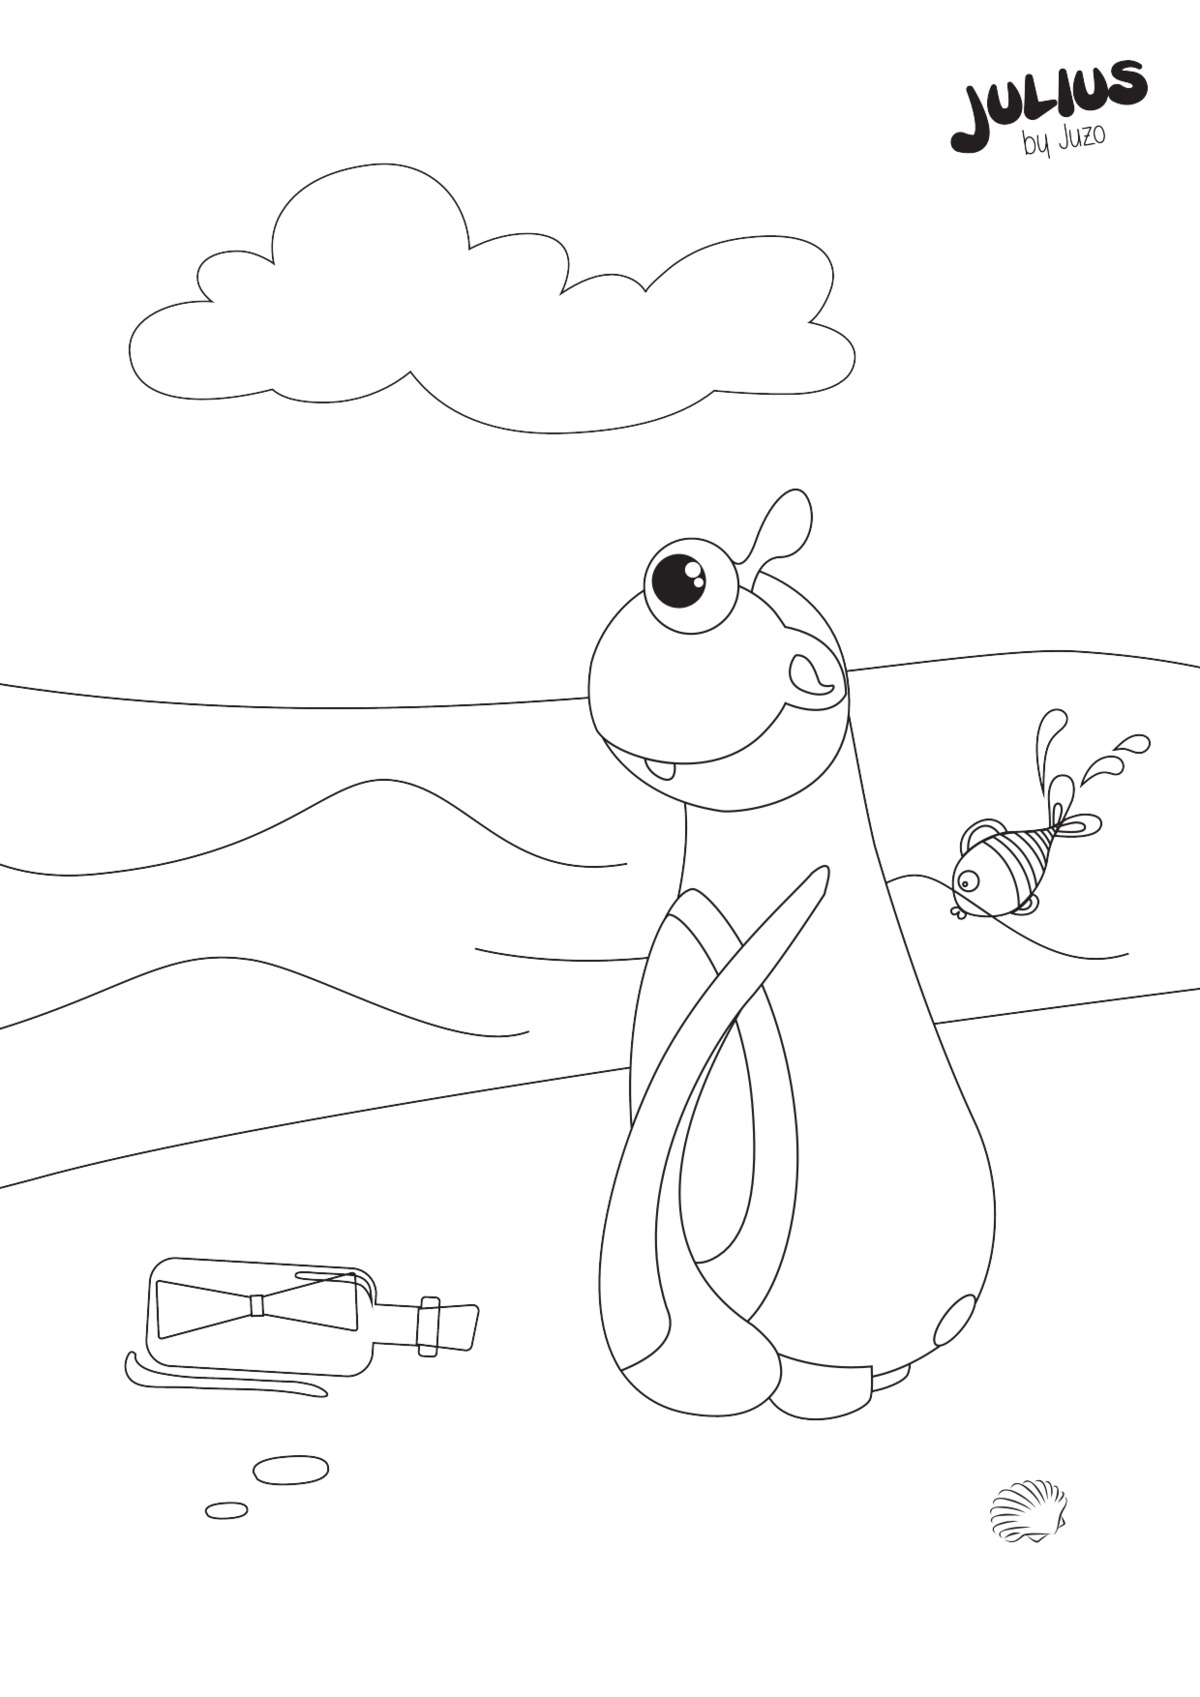 Julius message in a bottle - colouring pages